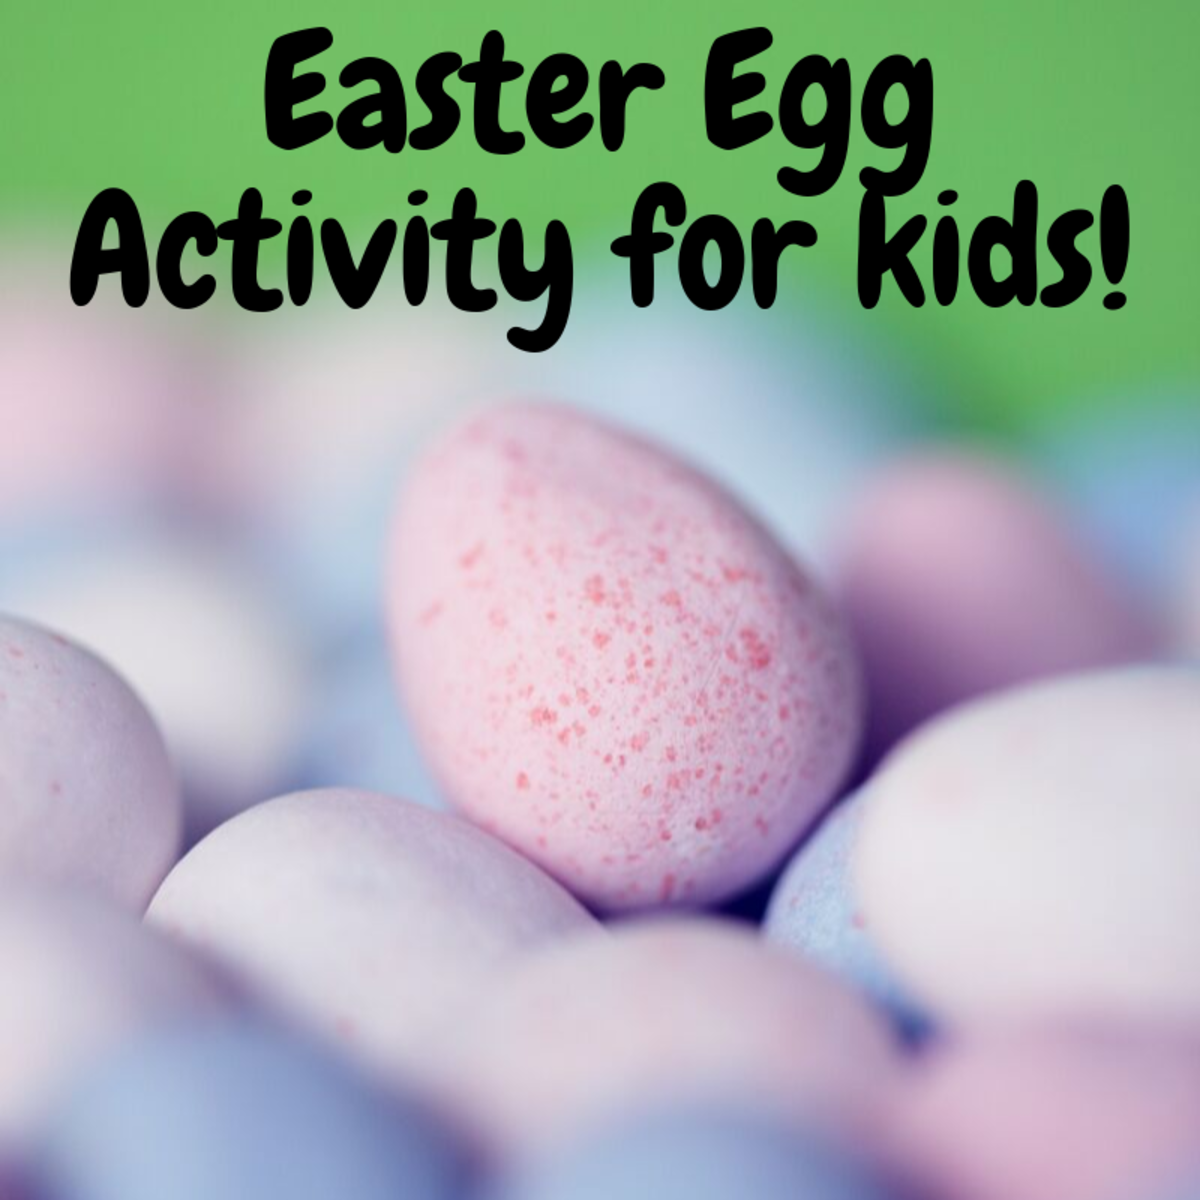 This Easter egg activity is great for your kids!